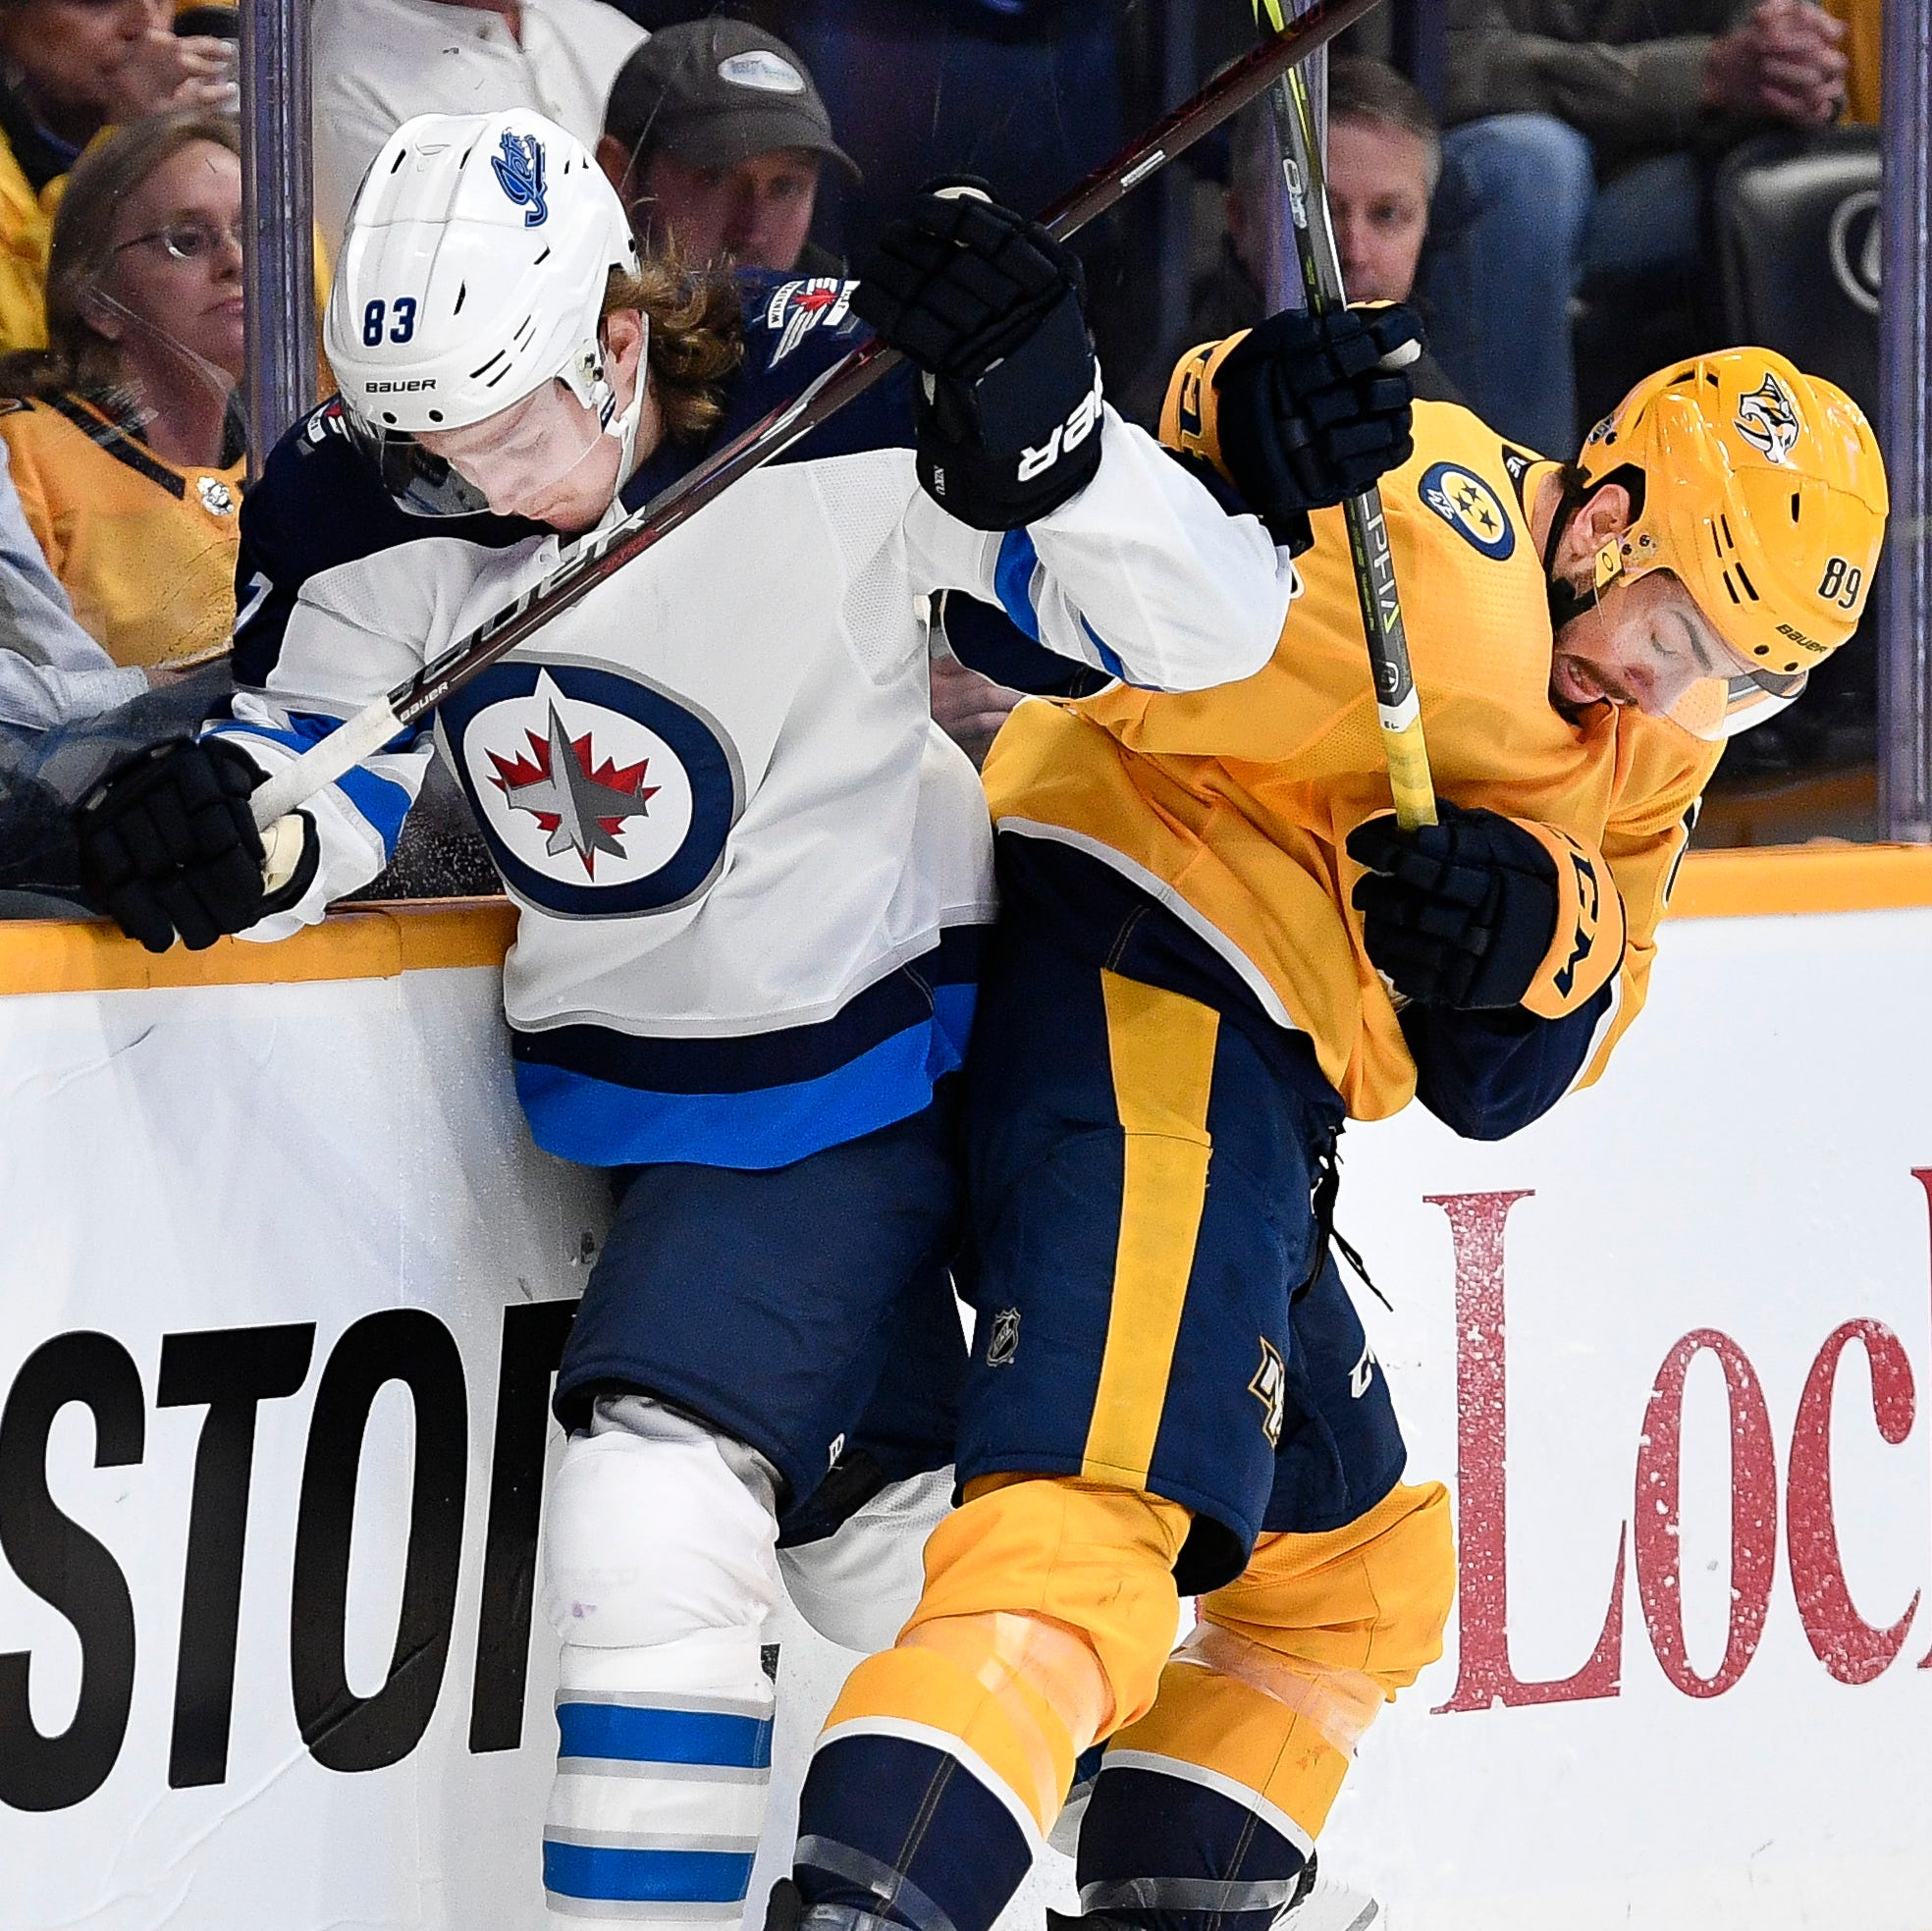 Thursday's recap: Jets 5, Predators 1